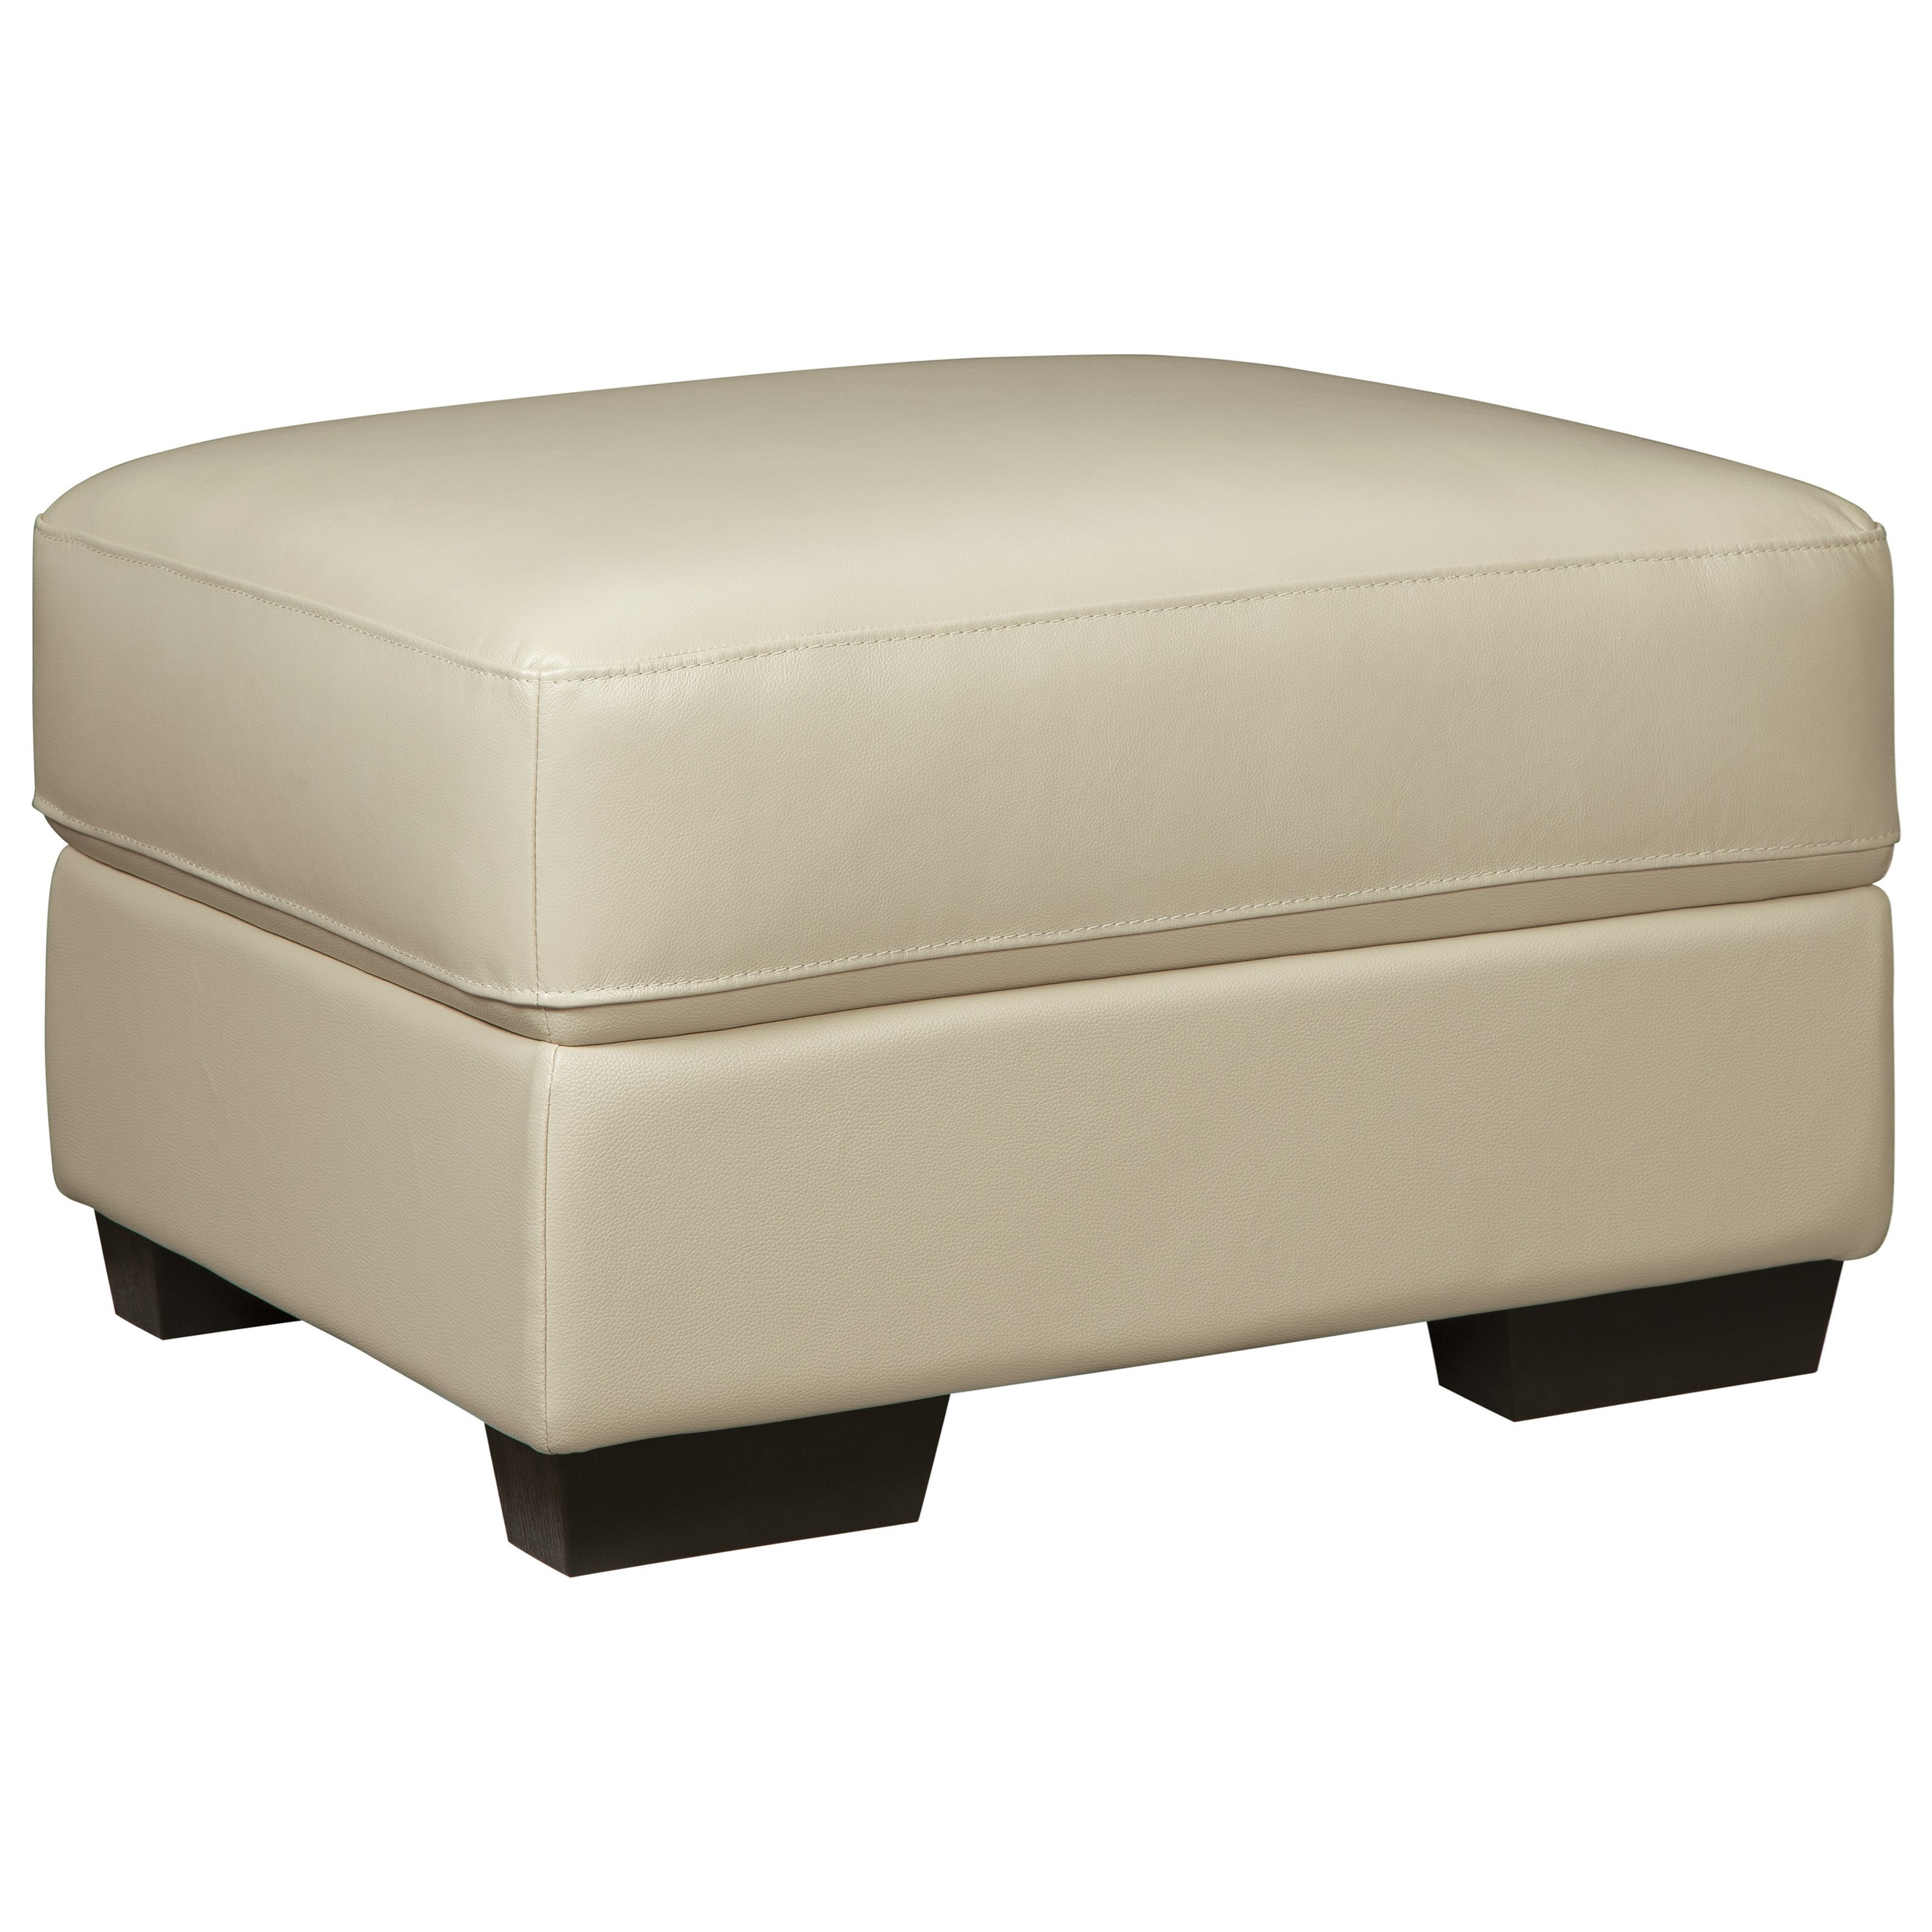 Signature Design by Ashley Fontenot Ottoman - Item Number: 1220314